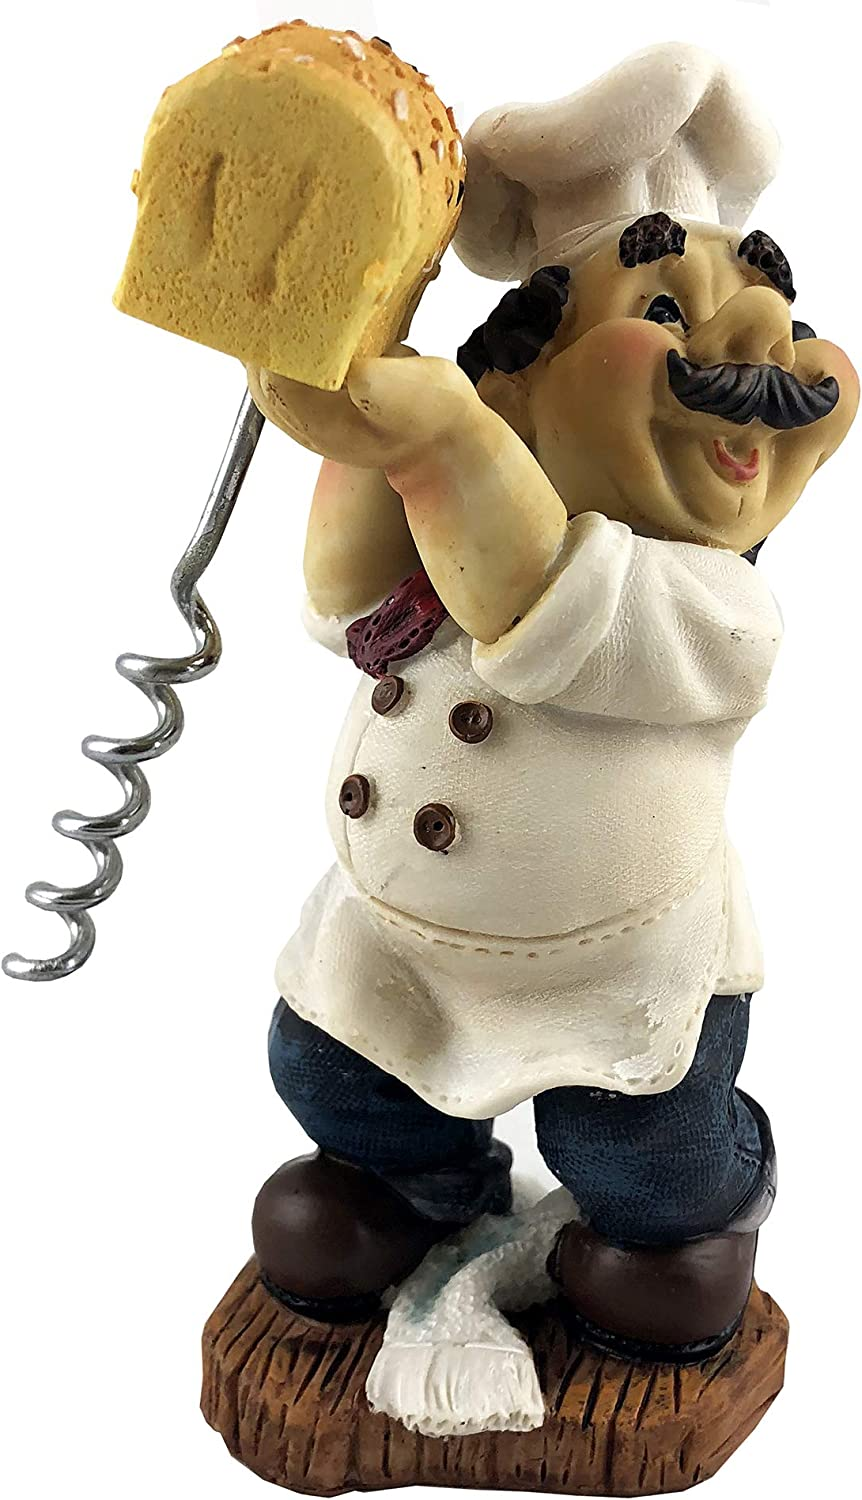 Funny Cork Opener Fat Chef with Bred Figurine 6 Inches Decorative Wine Opener D